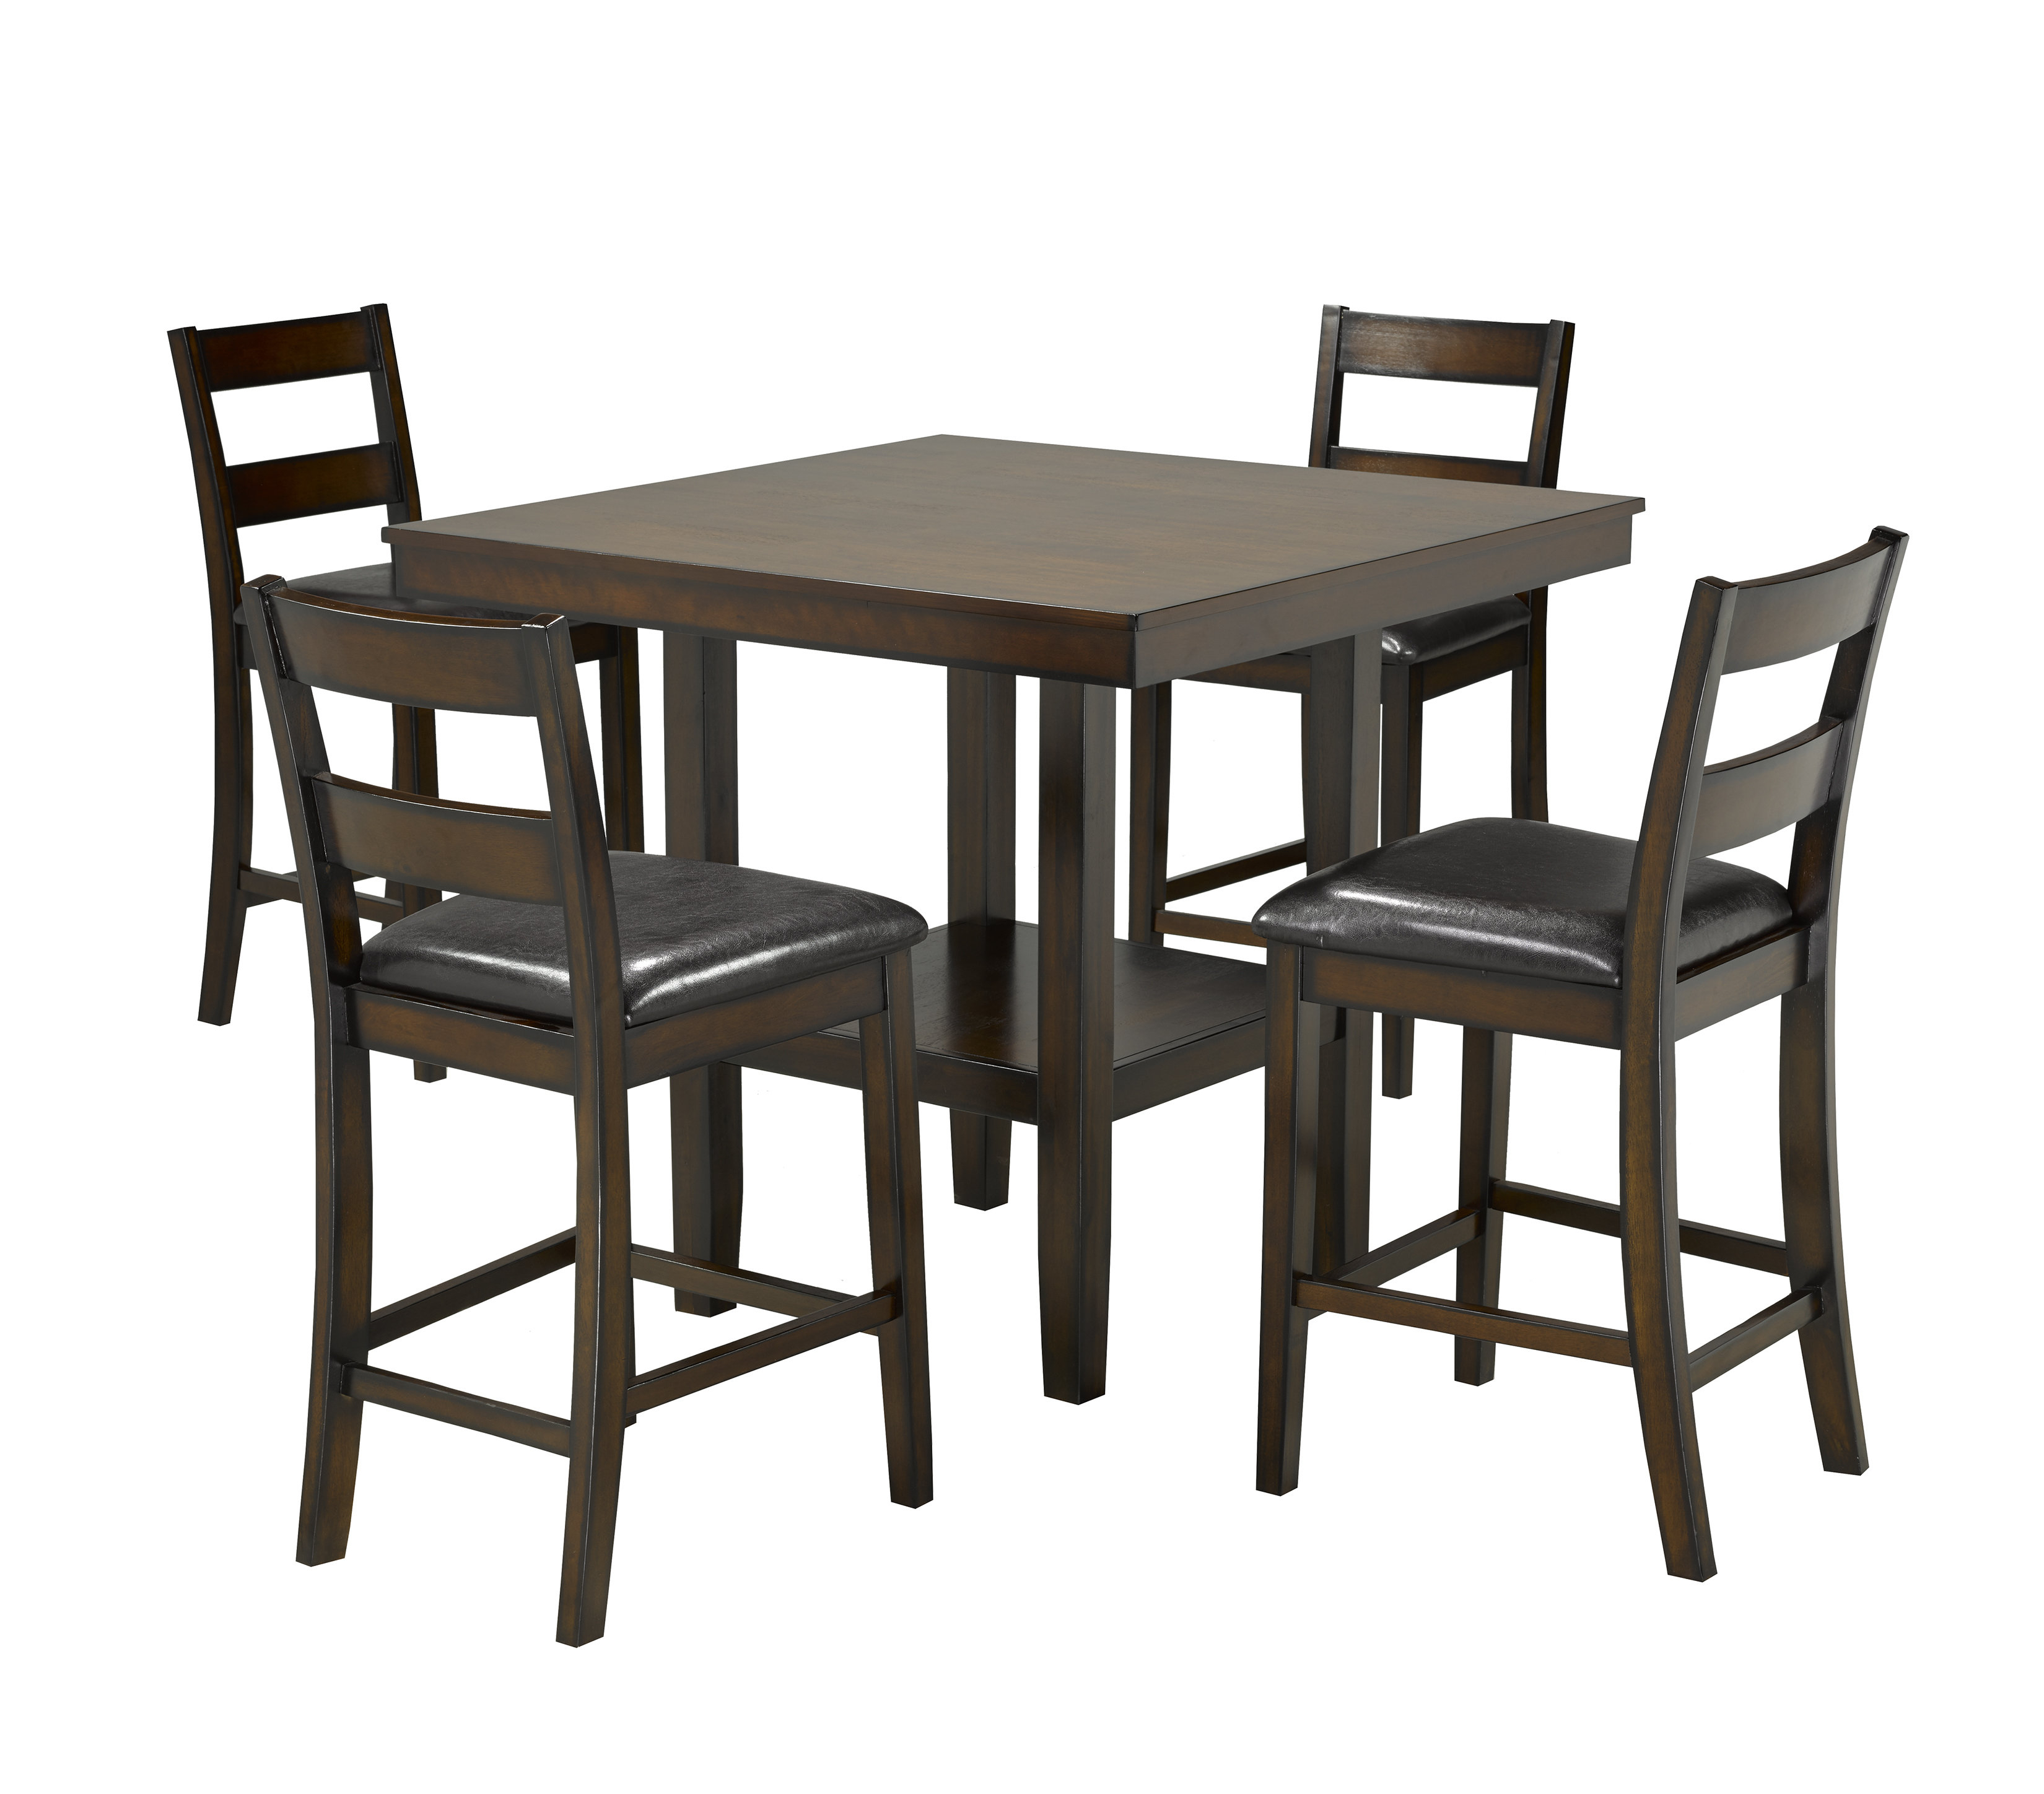 Tavarez 5 Piece Pub Set, Espresso Throughout 2018 Tavarez 5 Piece Dining Sets (Image 18 of 20)